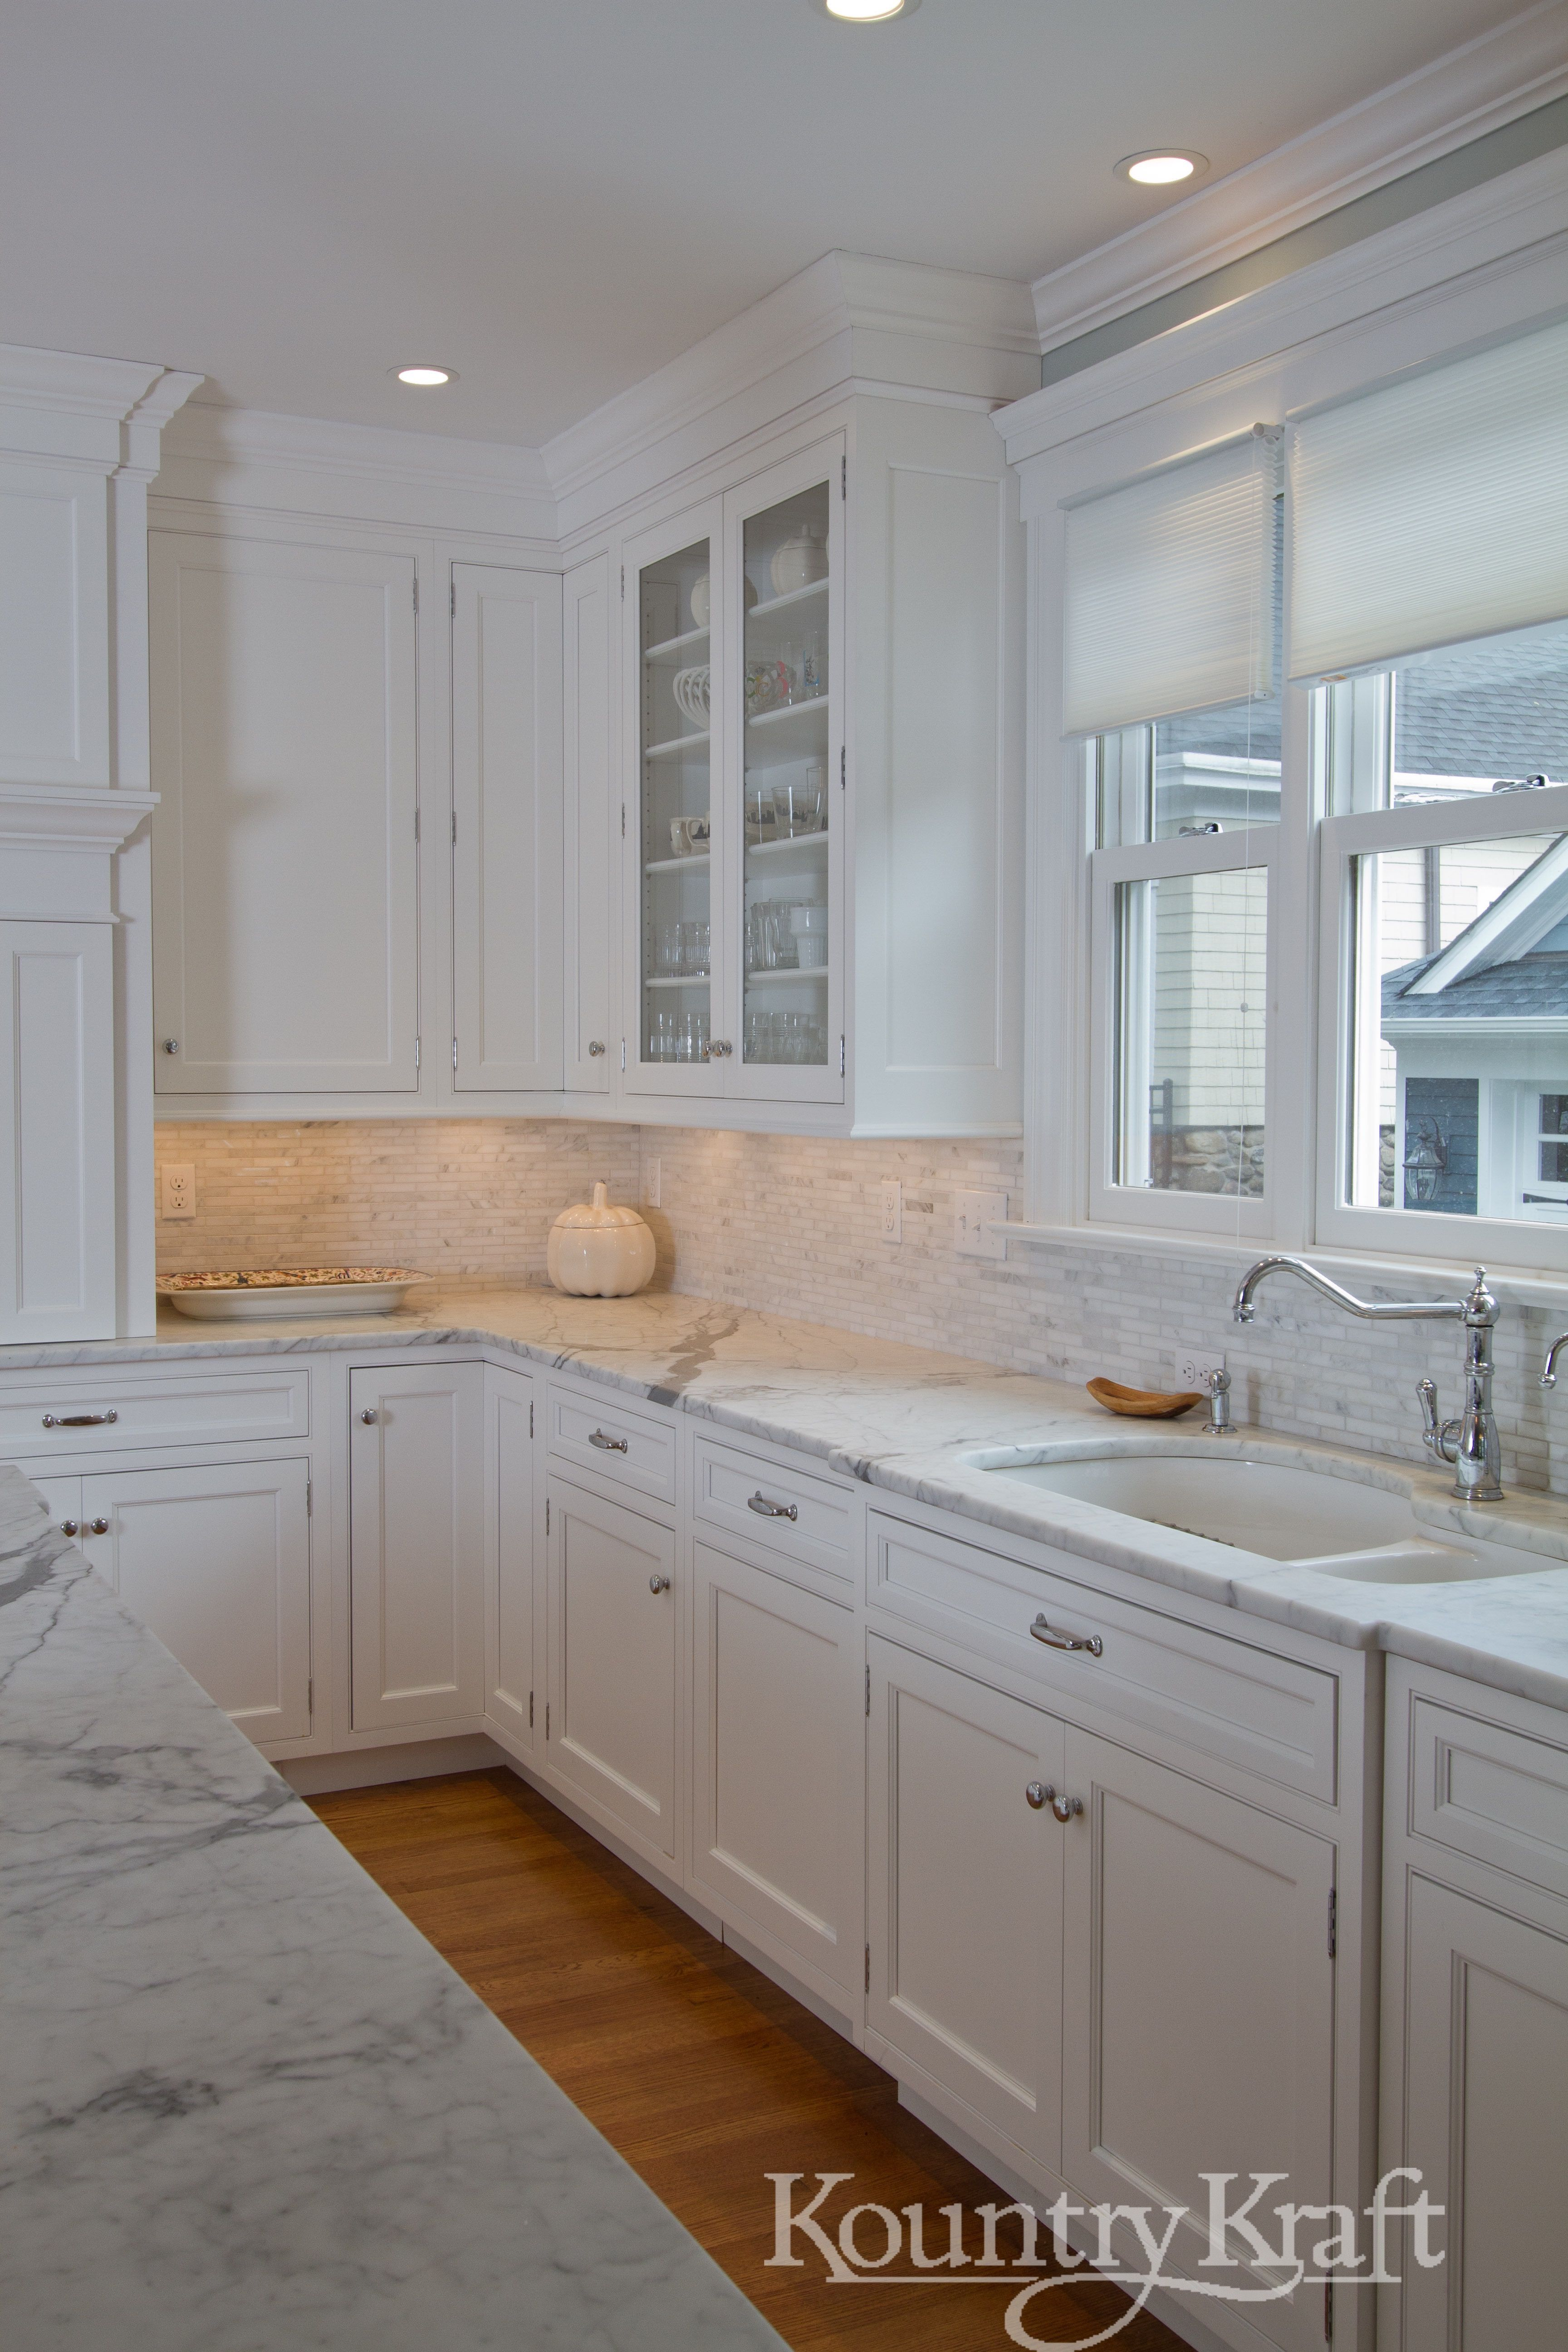 Custom Kitchen Cabinets designed by James Kershaw CKD of James Kershaw Associates in North Haledon NJ. This transitional kitchen includes door style and is ... & Custom Kitchen Cabinets designed by James Kershaw CKD of James ...